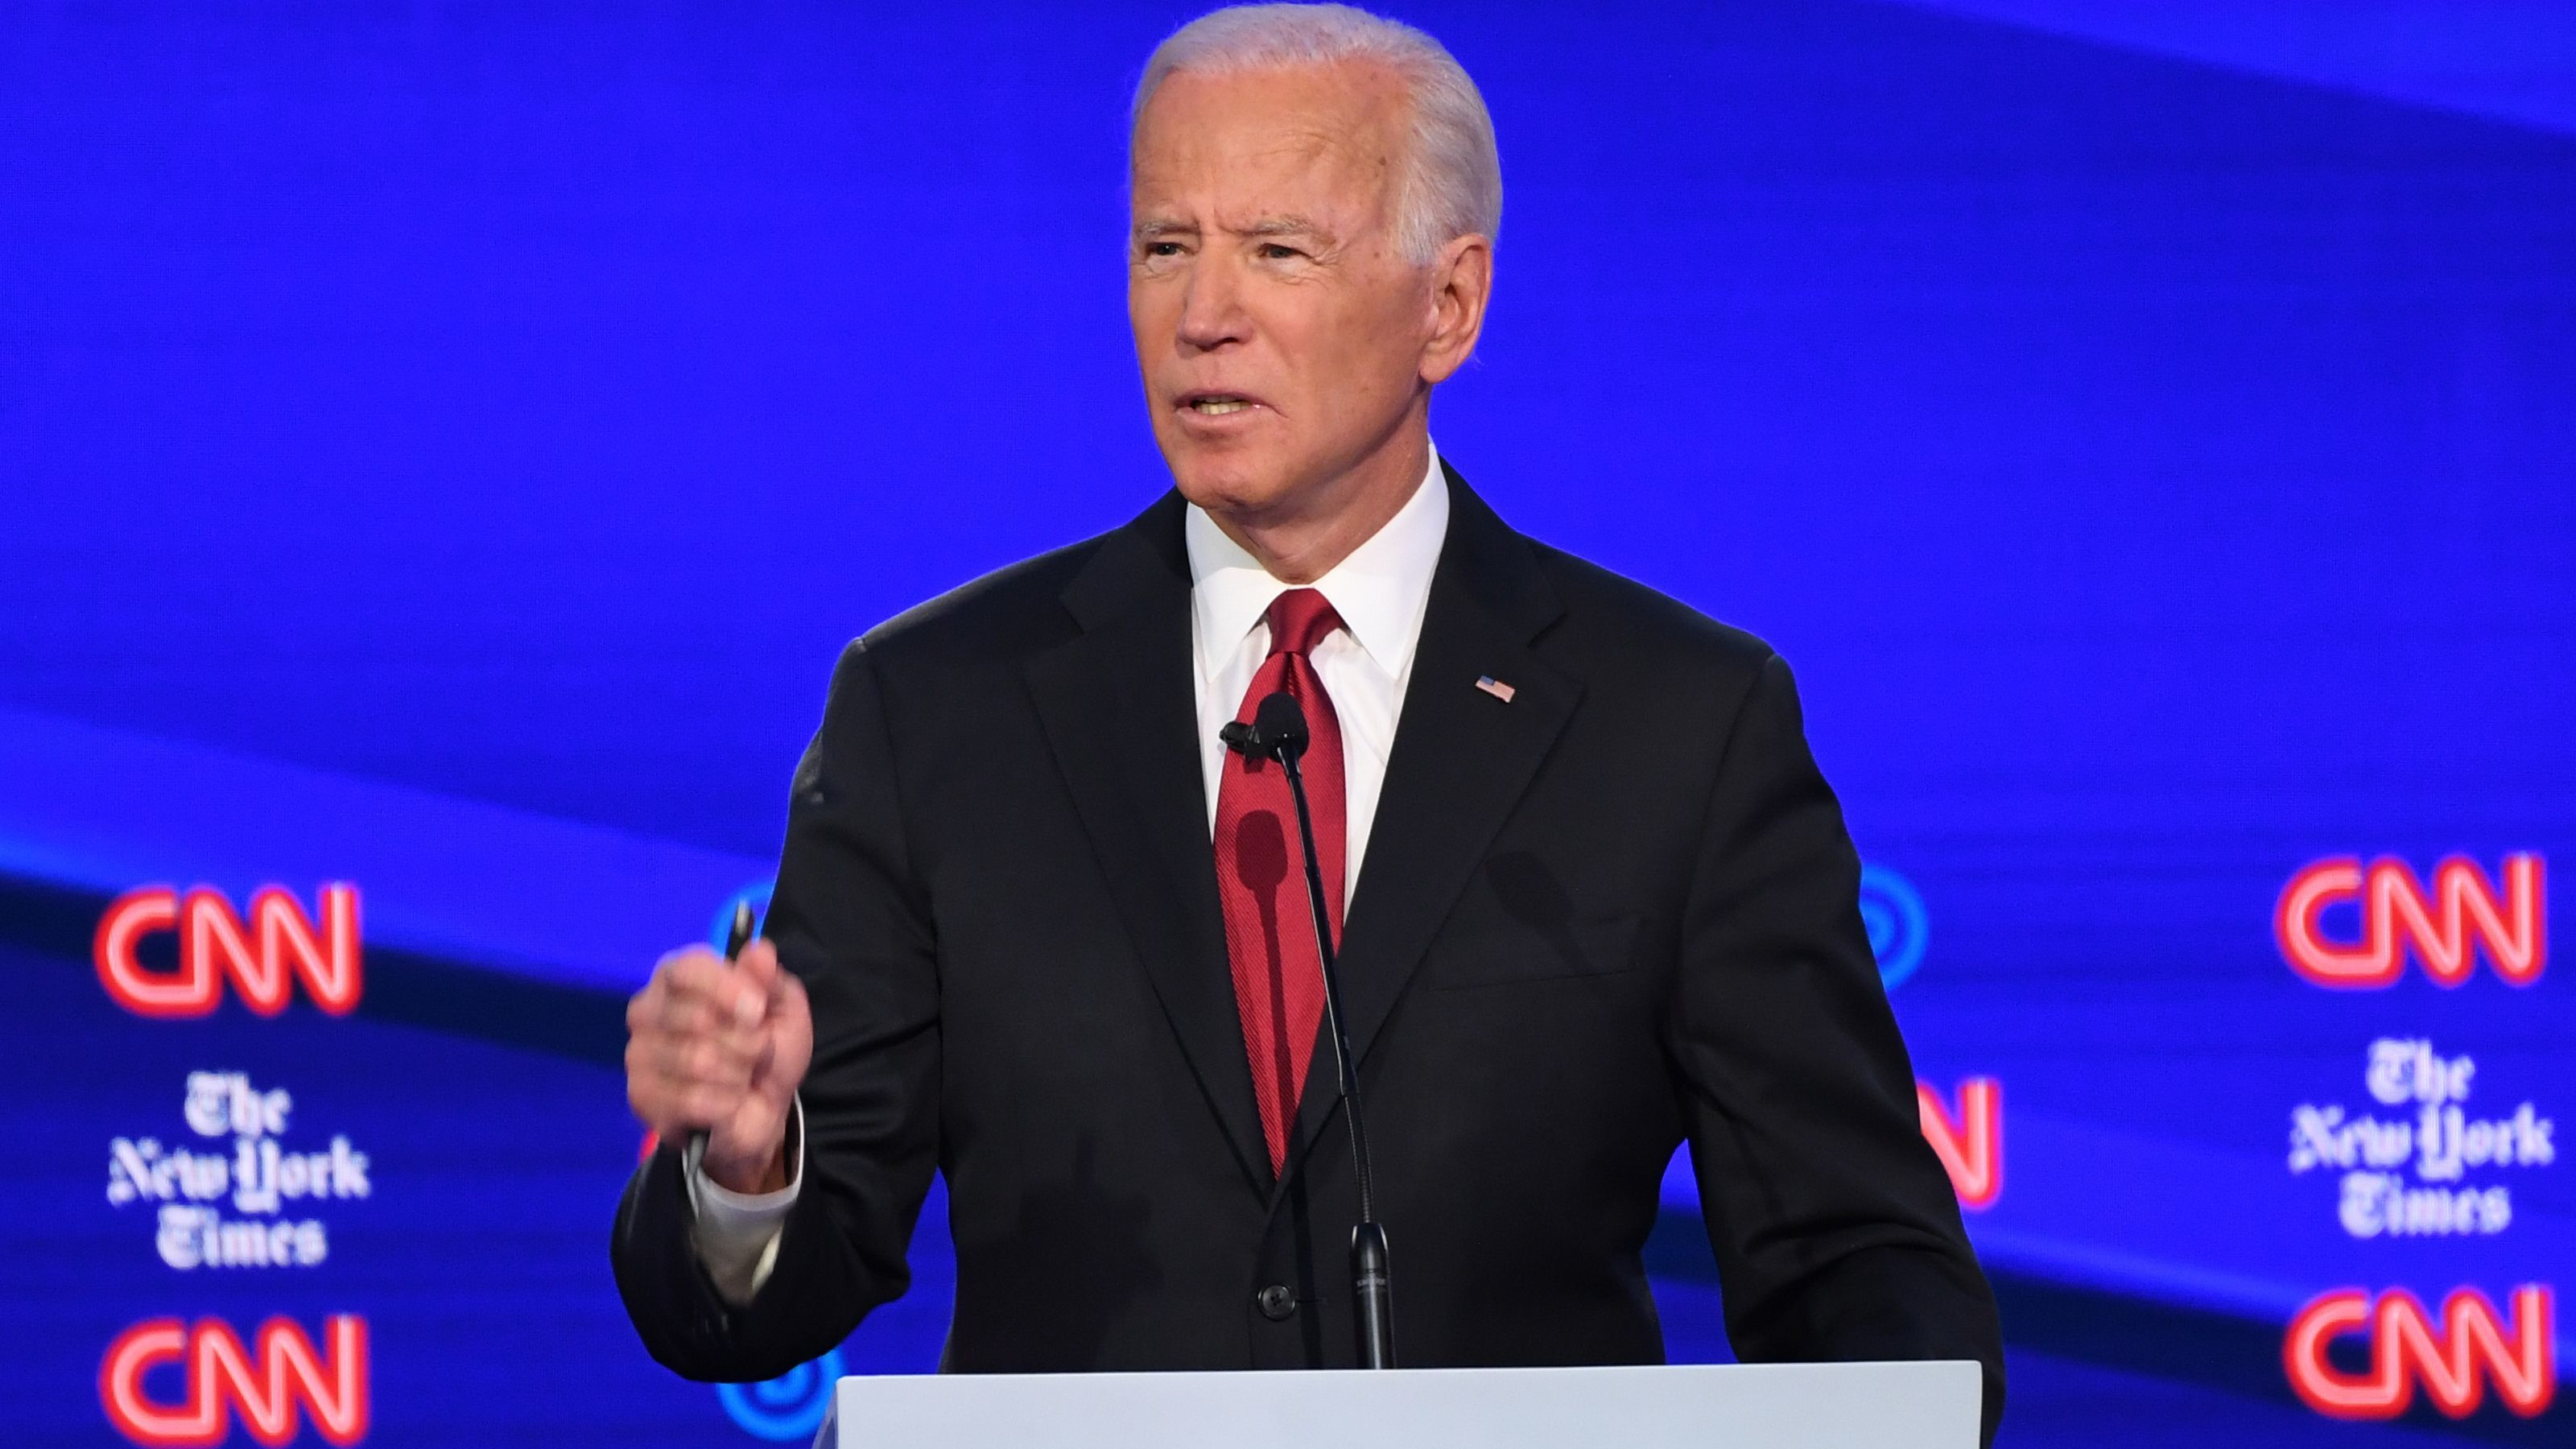 Biden In Democratic Debate Says His Son Hunter Did Nothing Wrong Npr